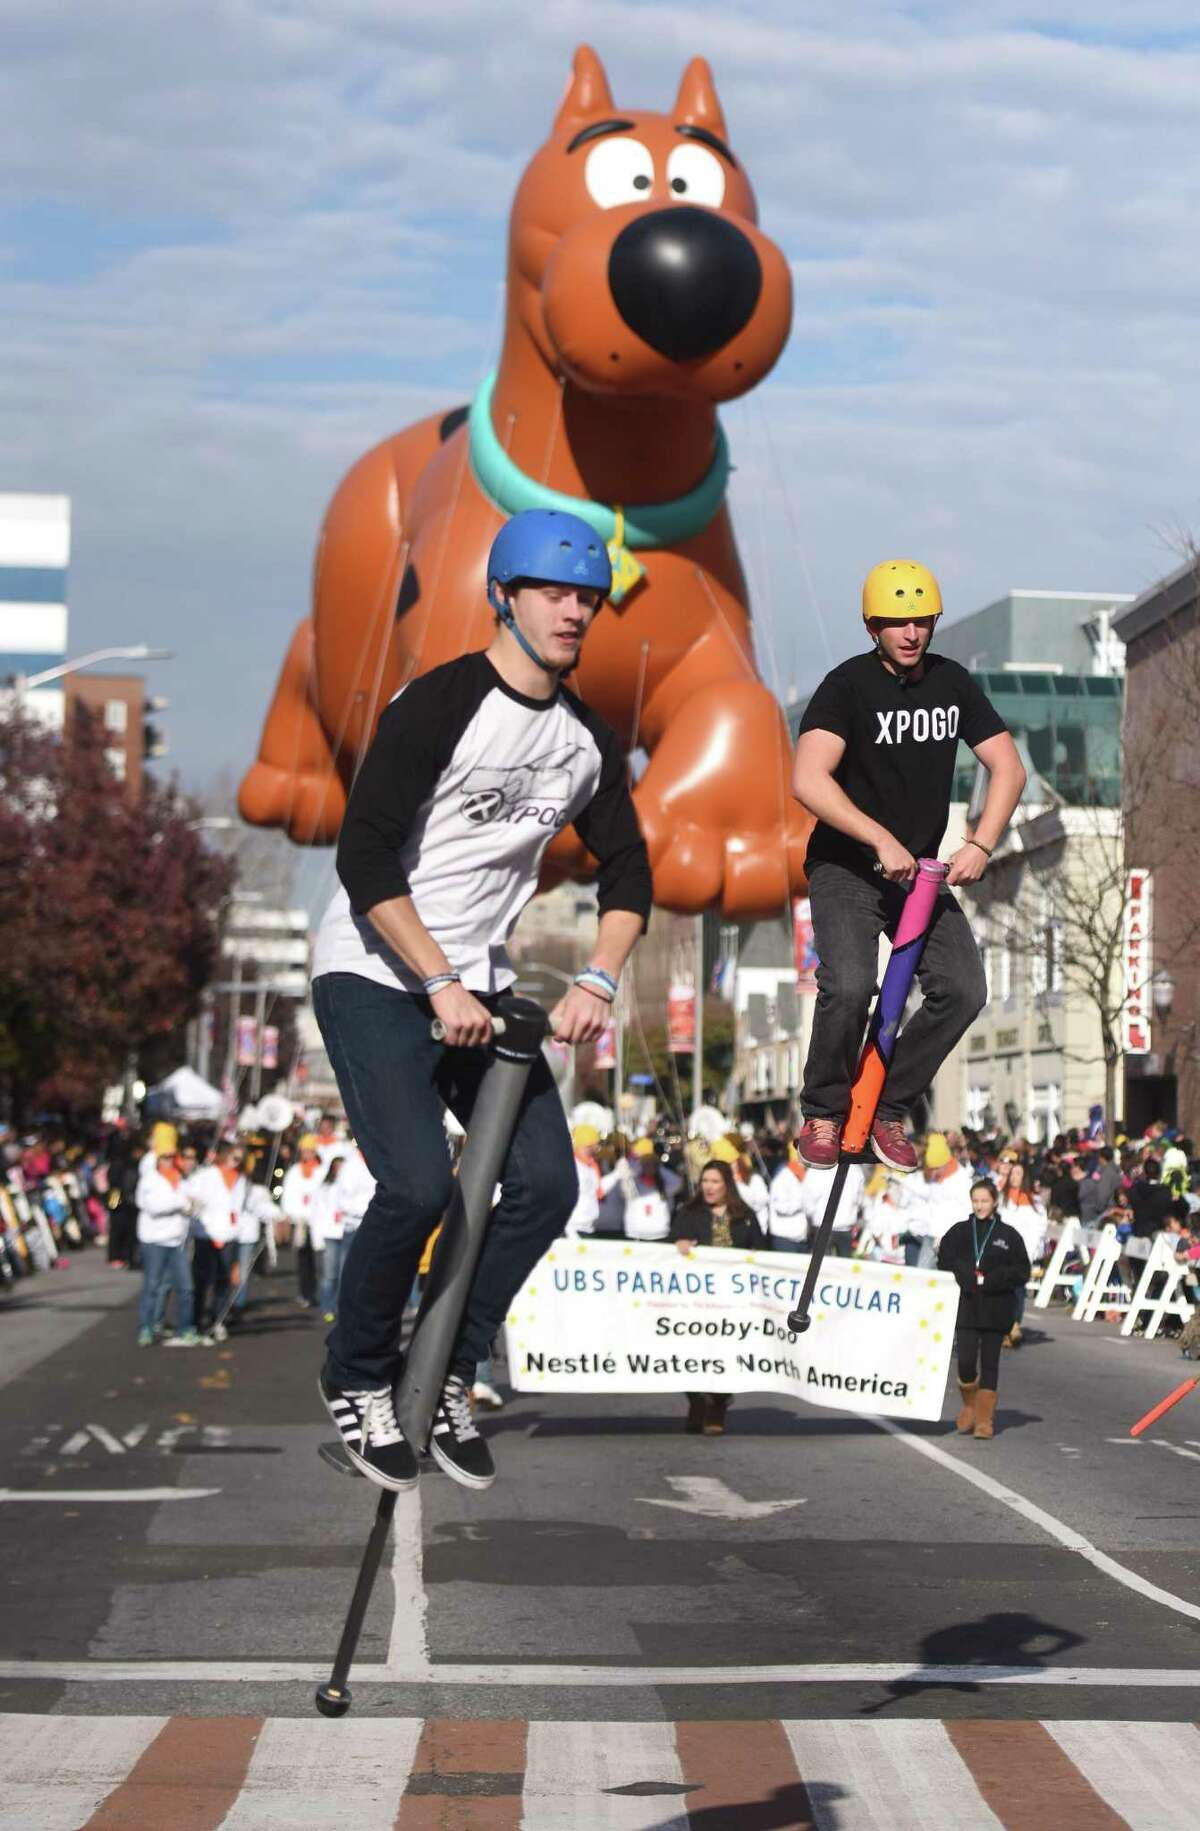 The Parade Spectacular Holiday Balloon Parade in Stamford is set for Nov. 19 and will feature marching bands, floats, dancers and giant helium balloons.